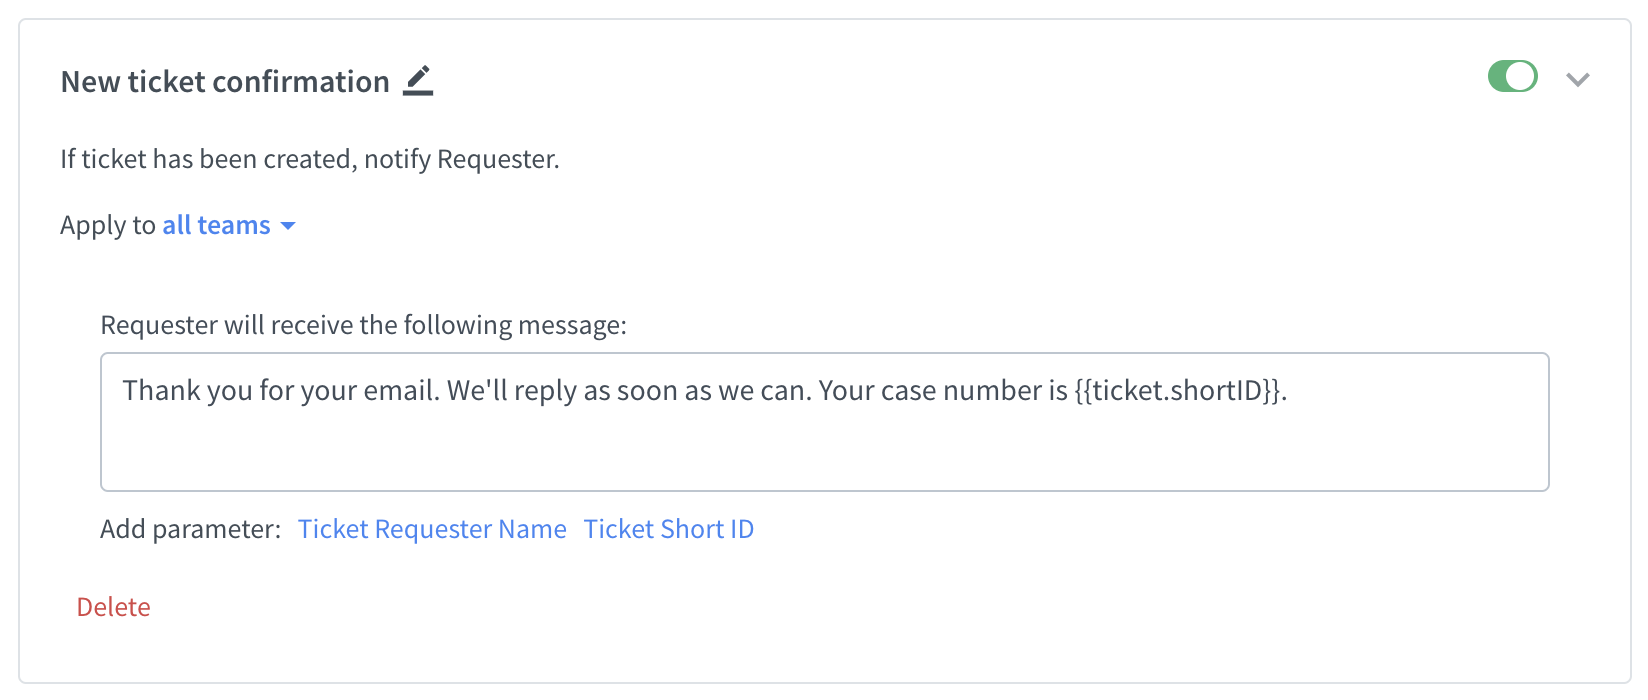 New ticket confirmation rule